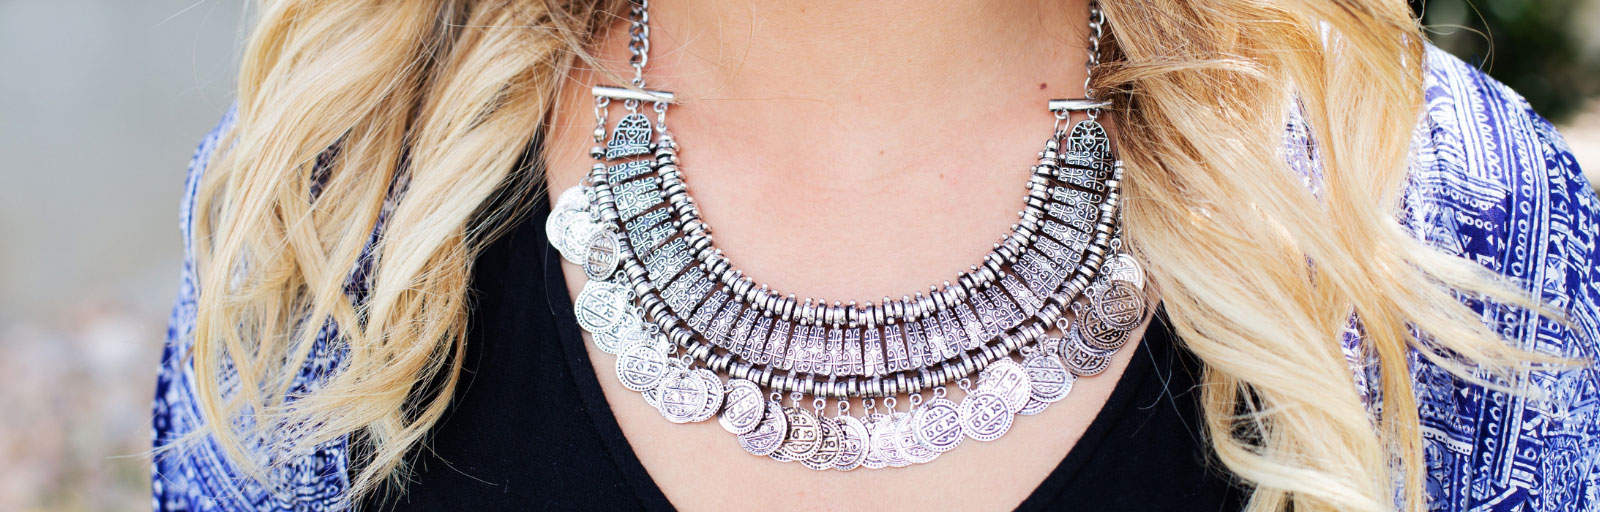 Charm Necklace | Mid-Season Trends: Necklaces for Women